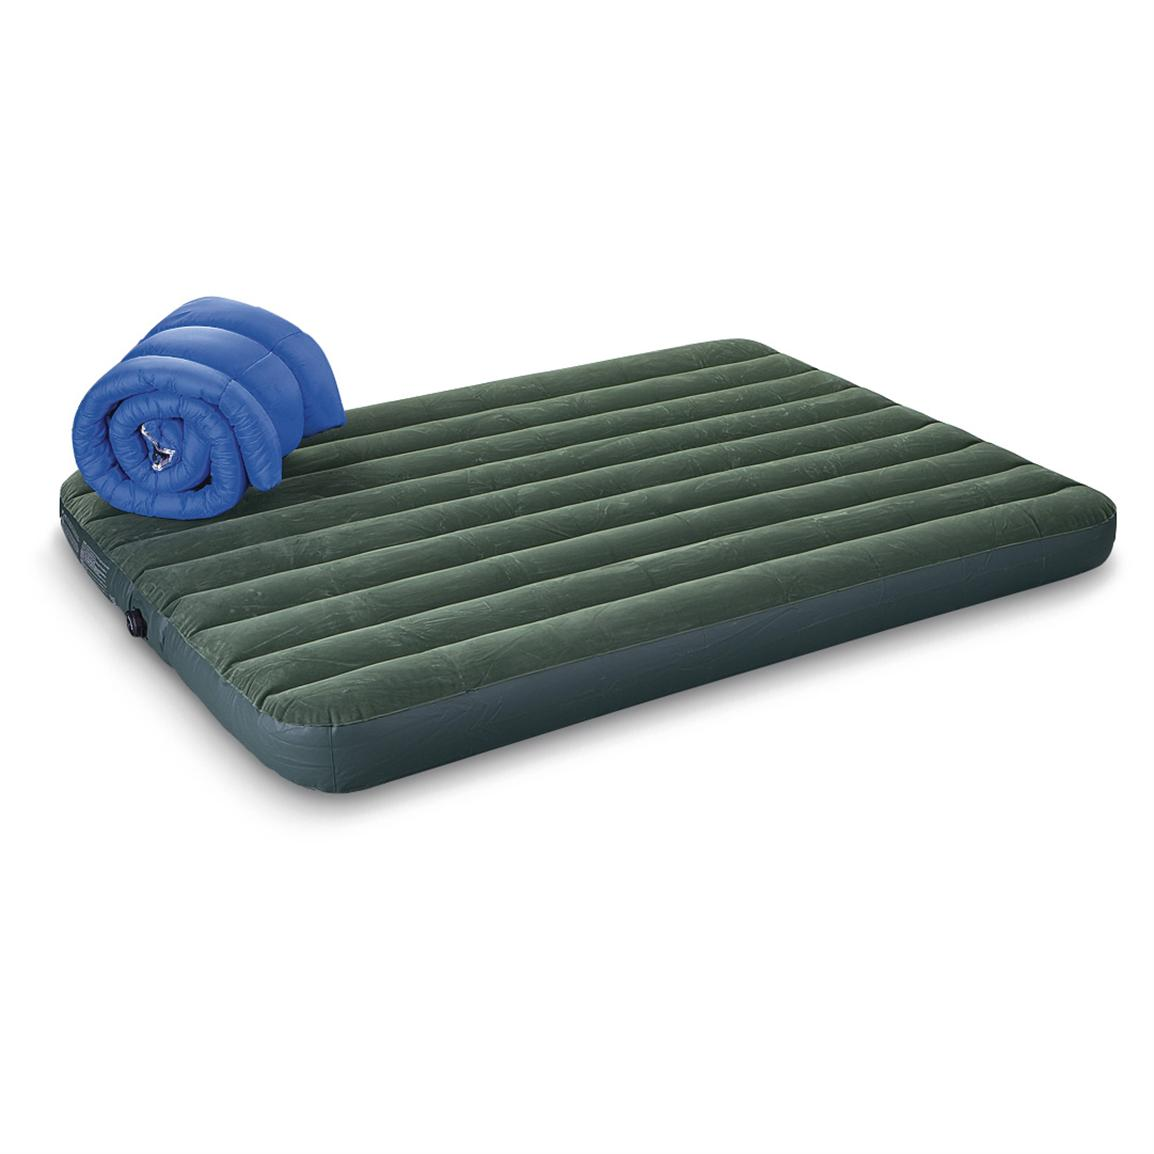 Review of - Intex Camp Air Bed with Pump